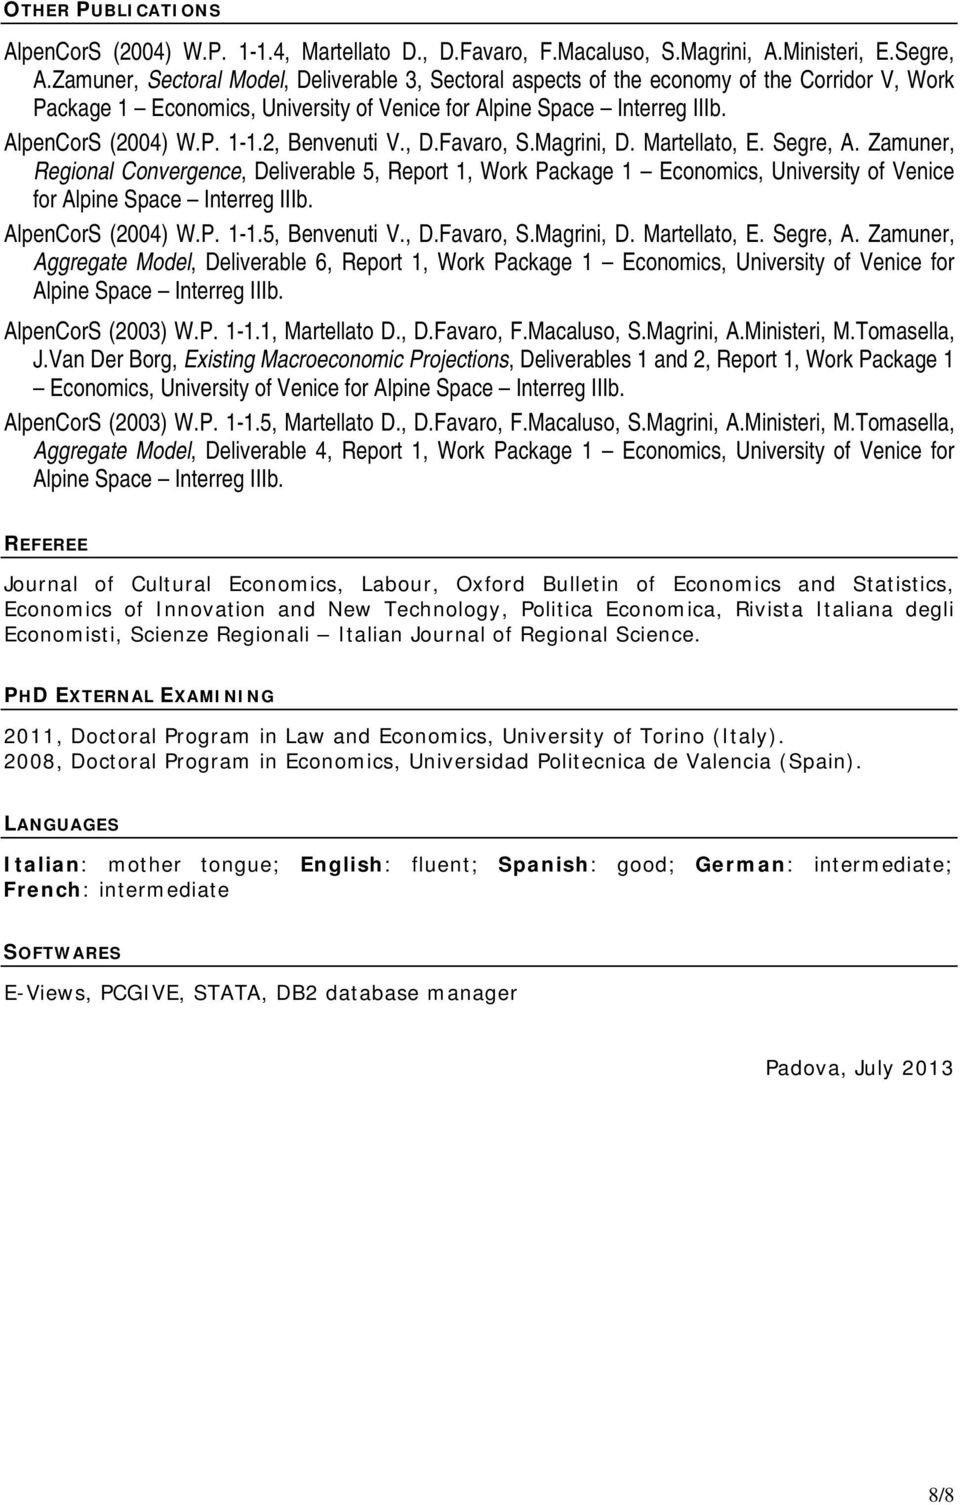 2, Benvenuti V., D.Favaro, S.Magrini, D. Martellato, E. Segre, A. Zamuner, Regional Convergence, Deliverable 5, Report 1, Work Package 1 Economics, University of Venice for Alpine Space Interreg IIIb.